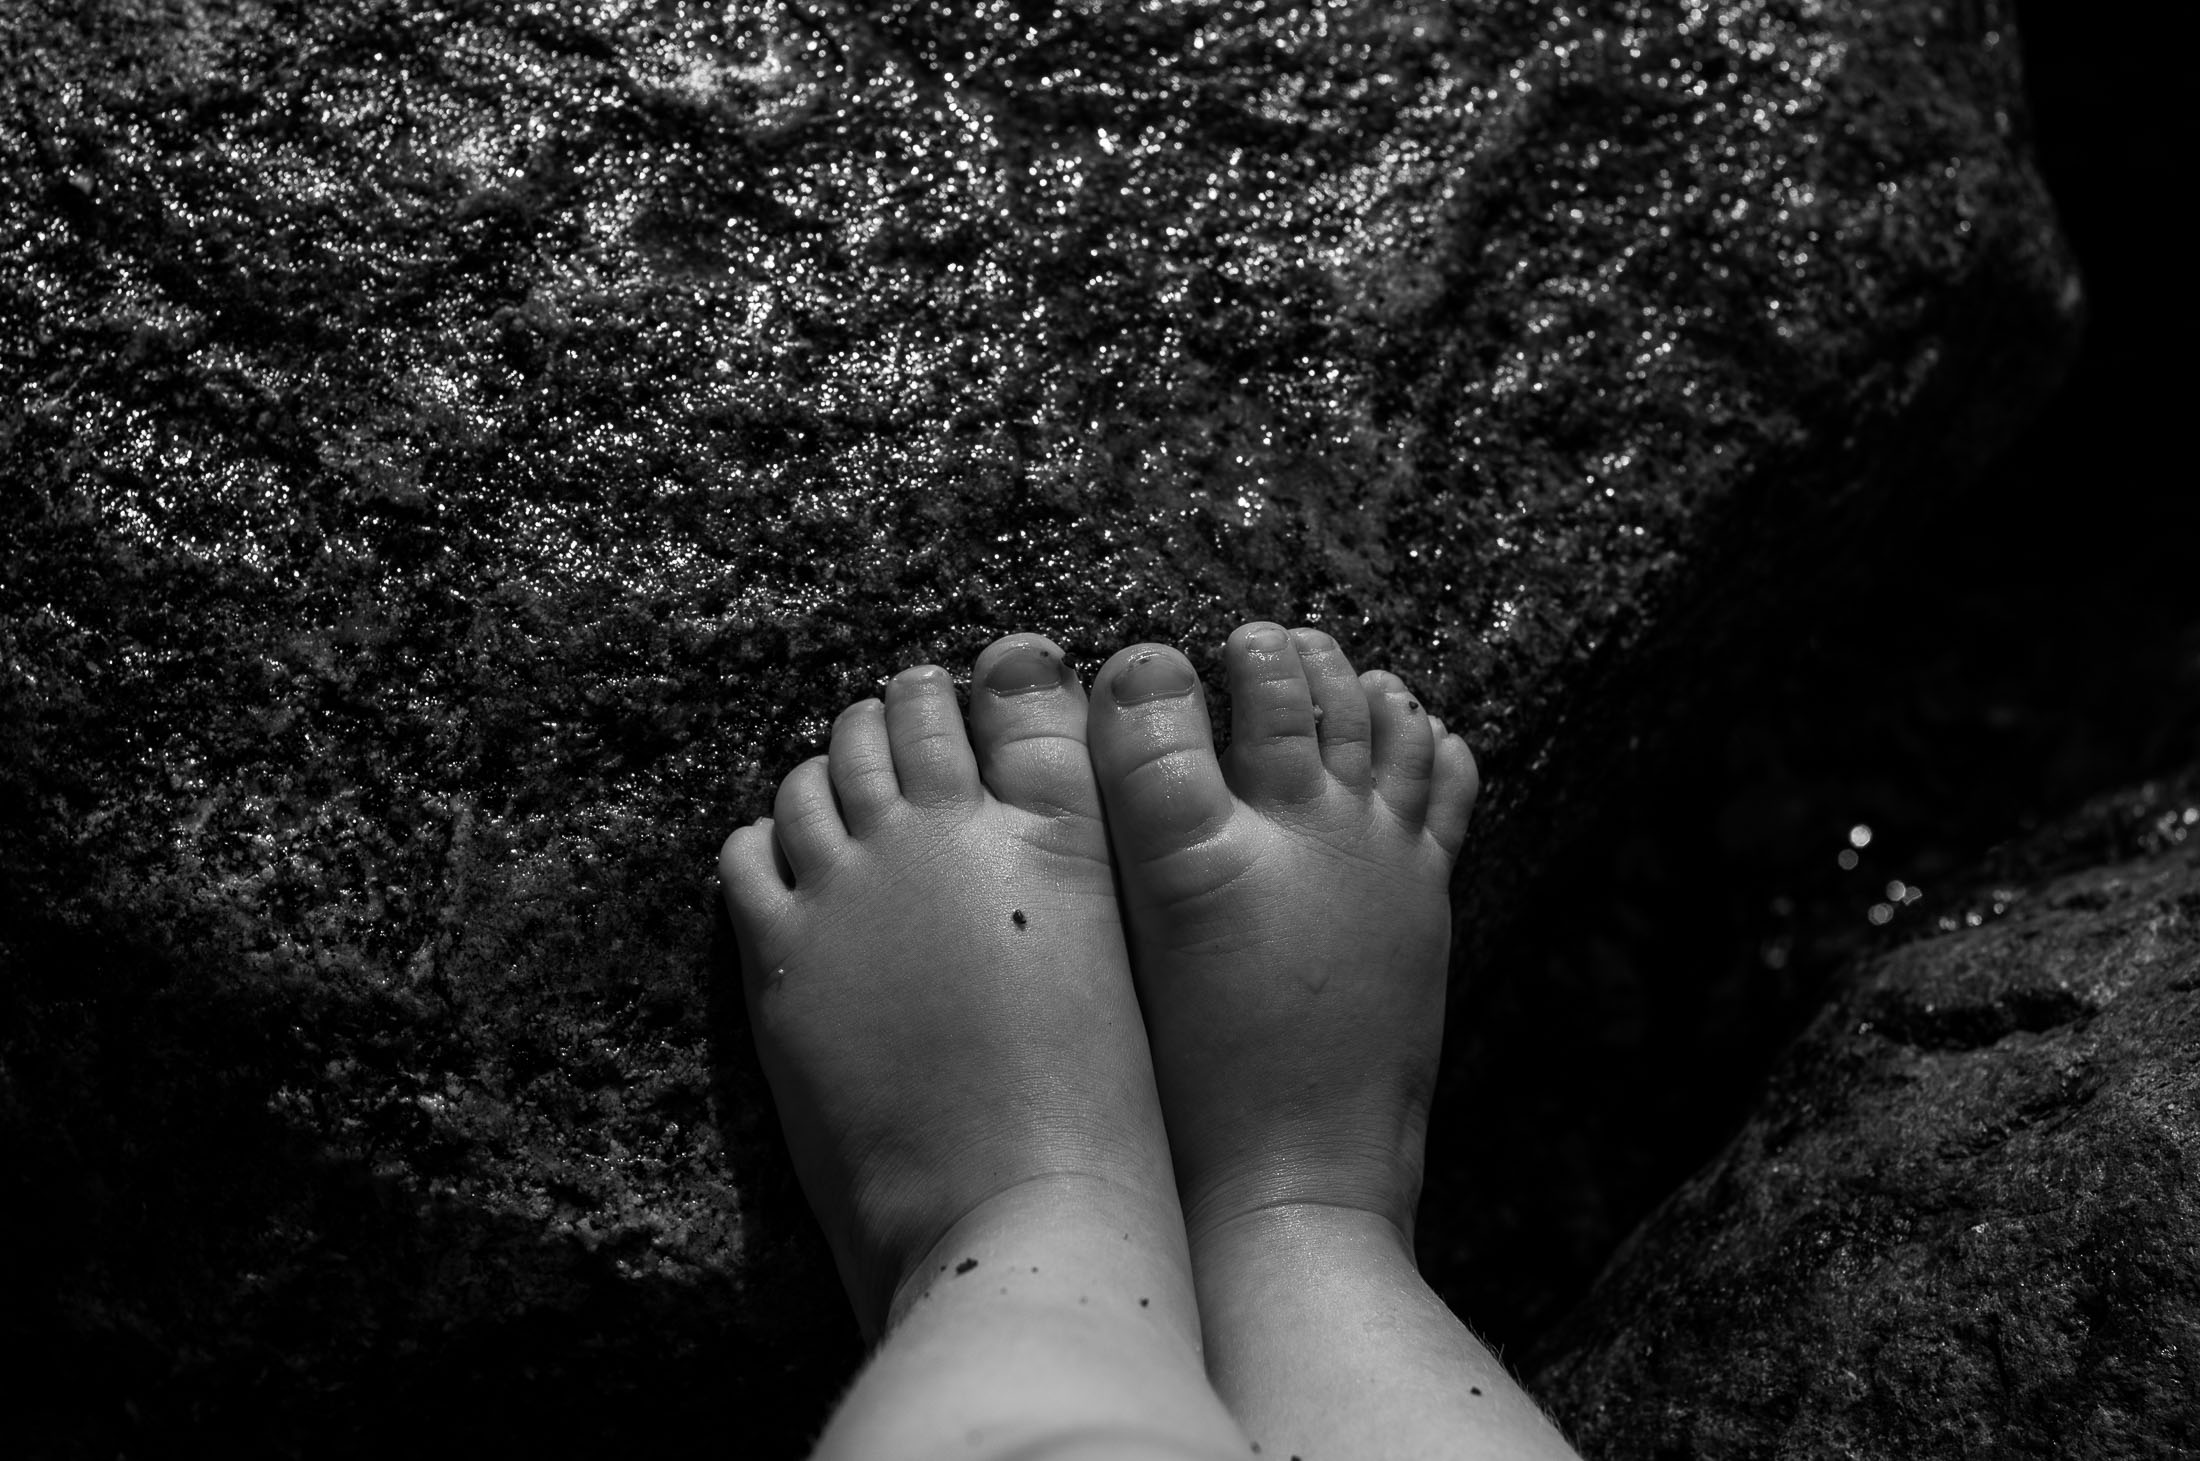 Tiny kid toes on a wet rock reflecting the bright light of summer. Photographed in Norway, 2017 by Kristine Nyborg / www.wildblueberryphotography.com